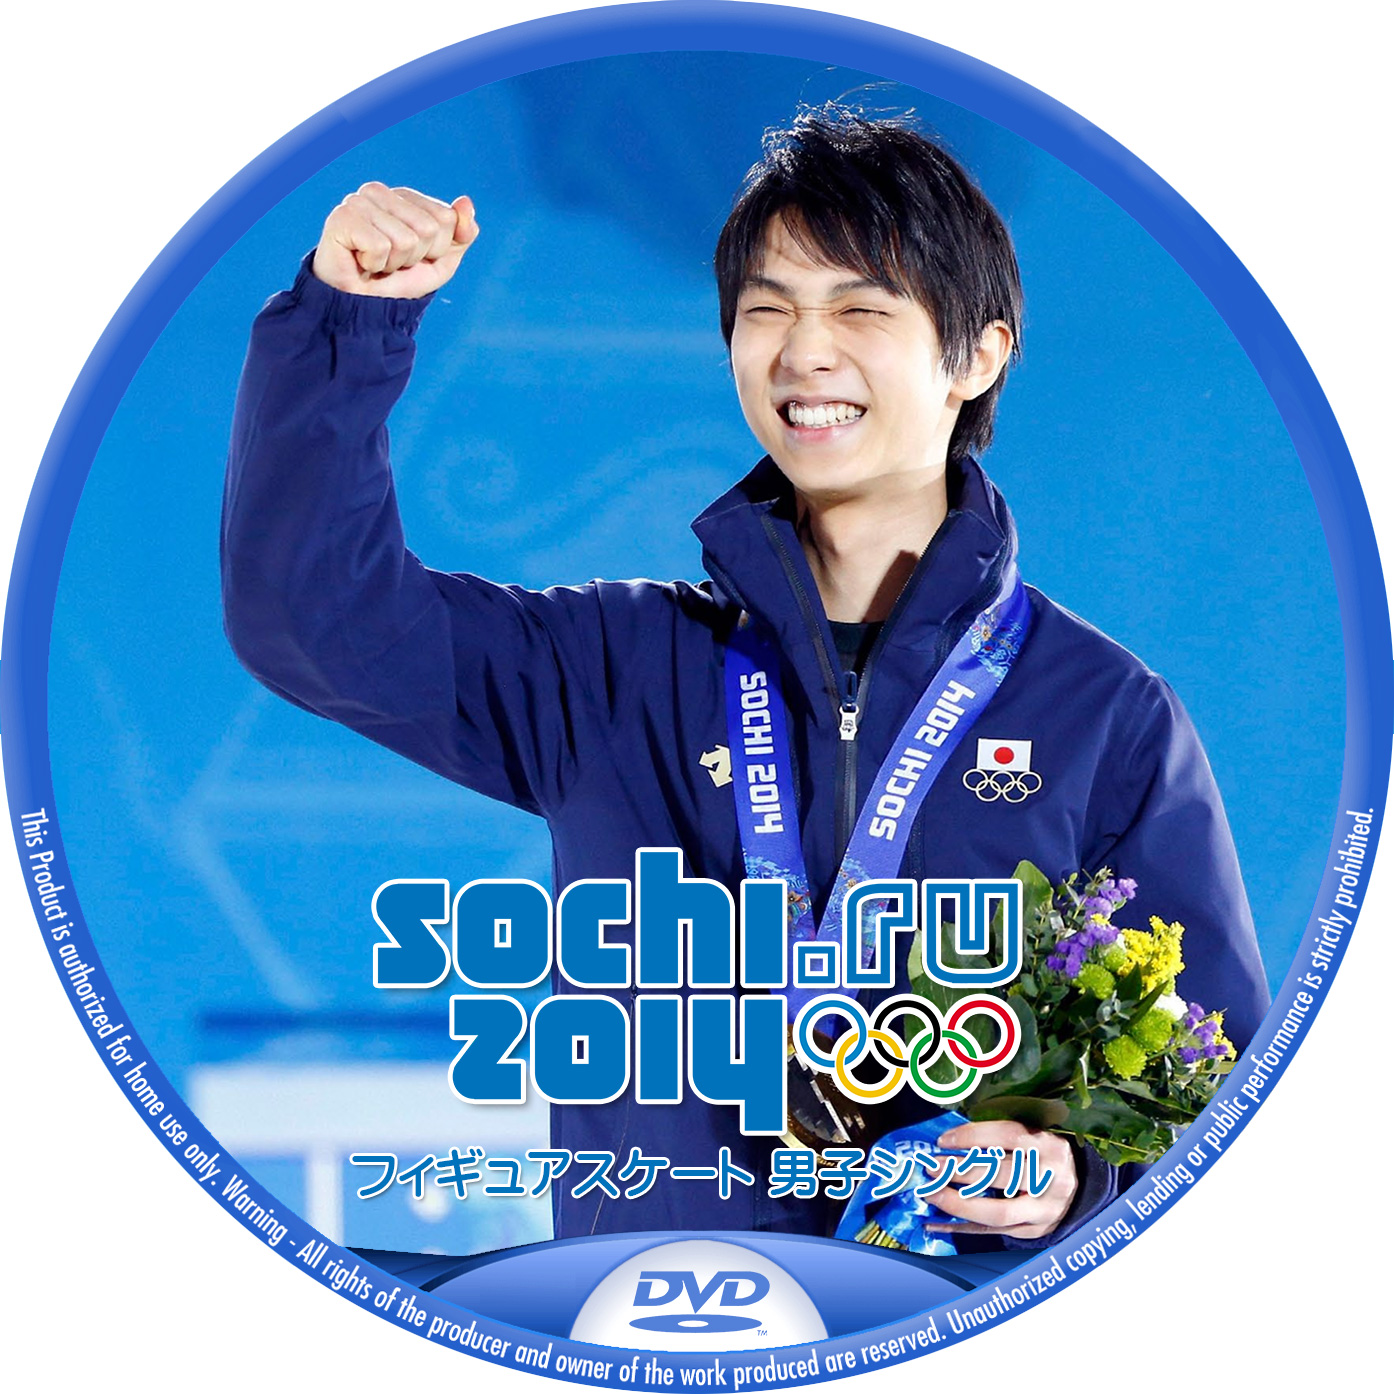 Sochi_Figure_Mens-DVD2